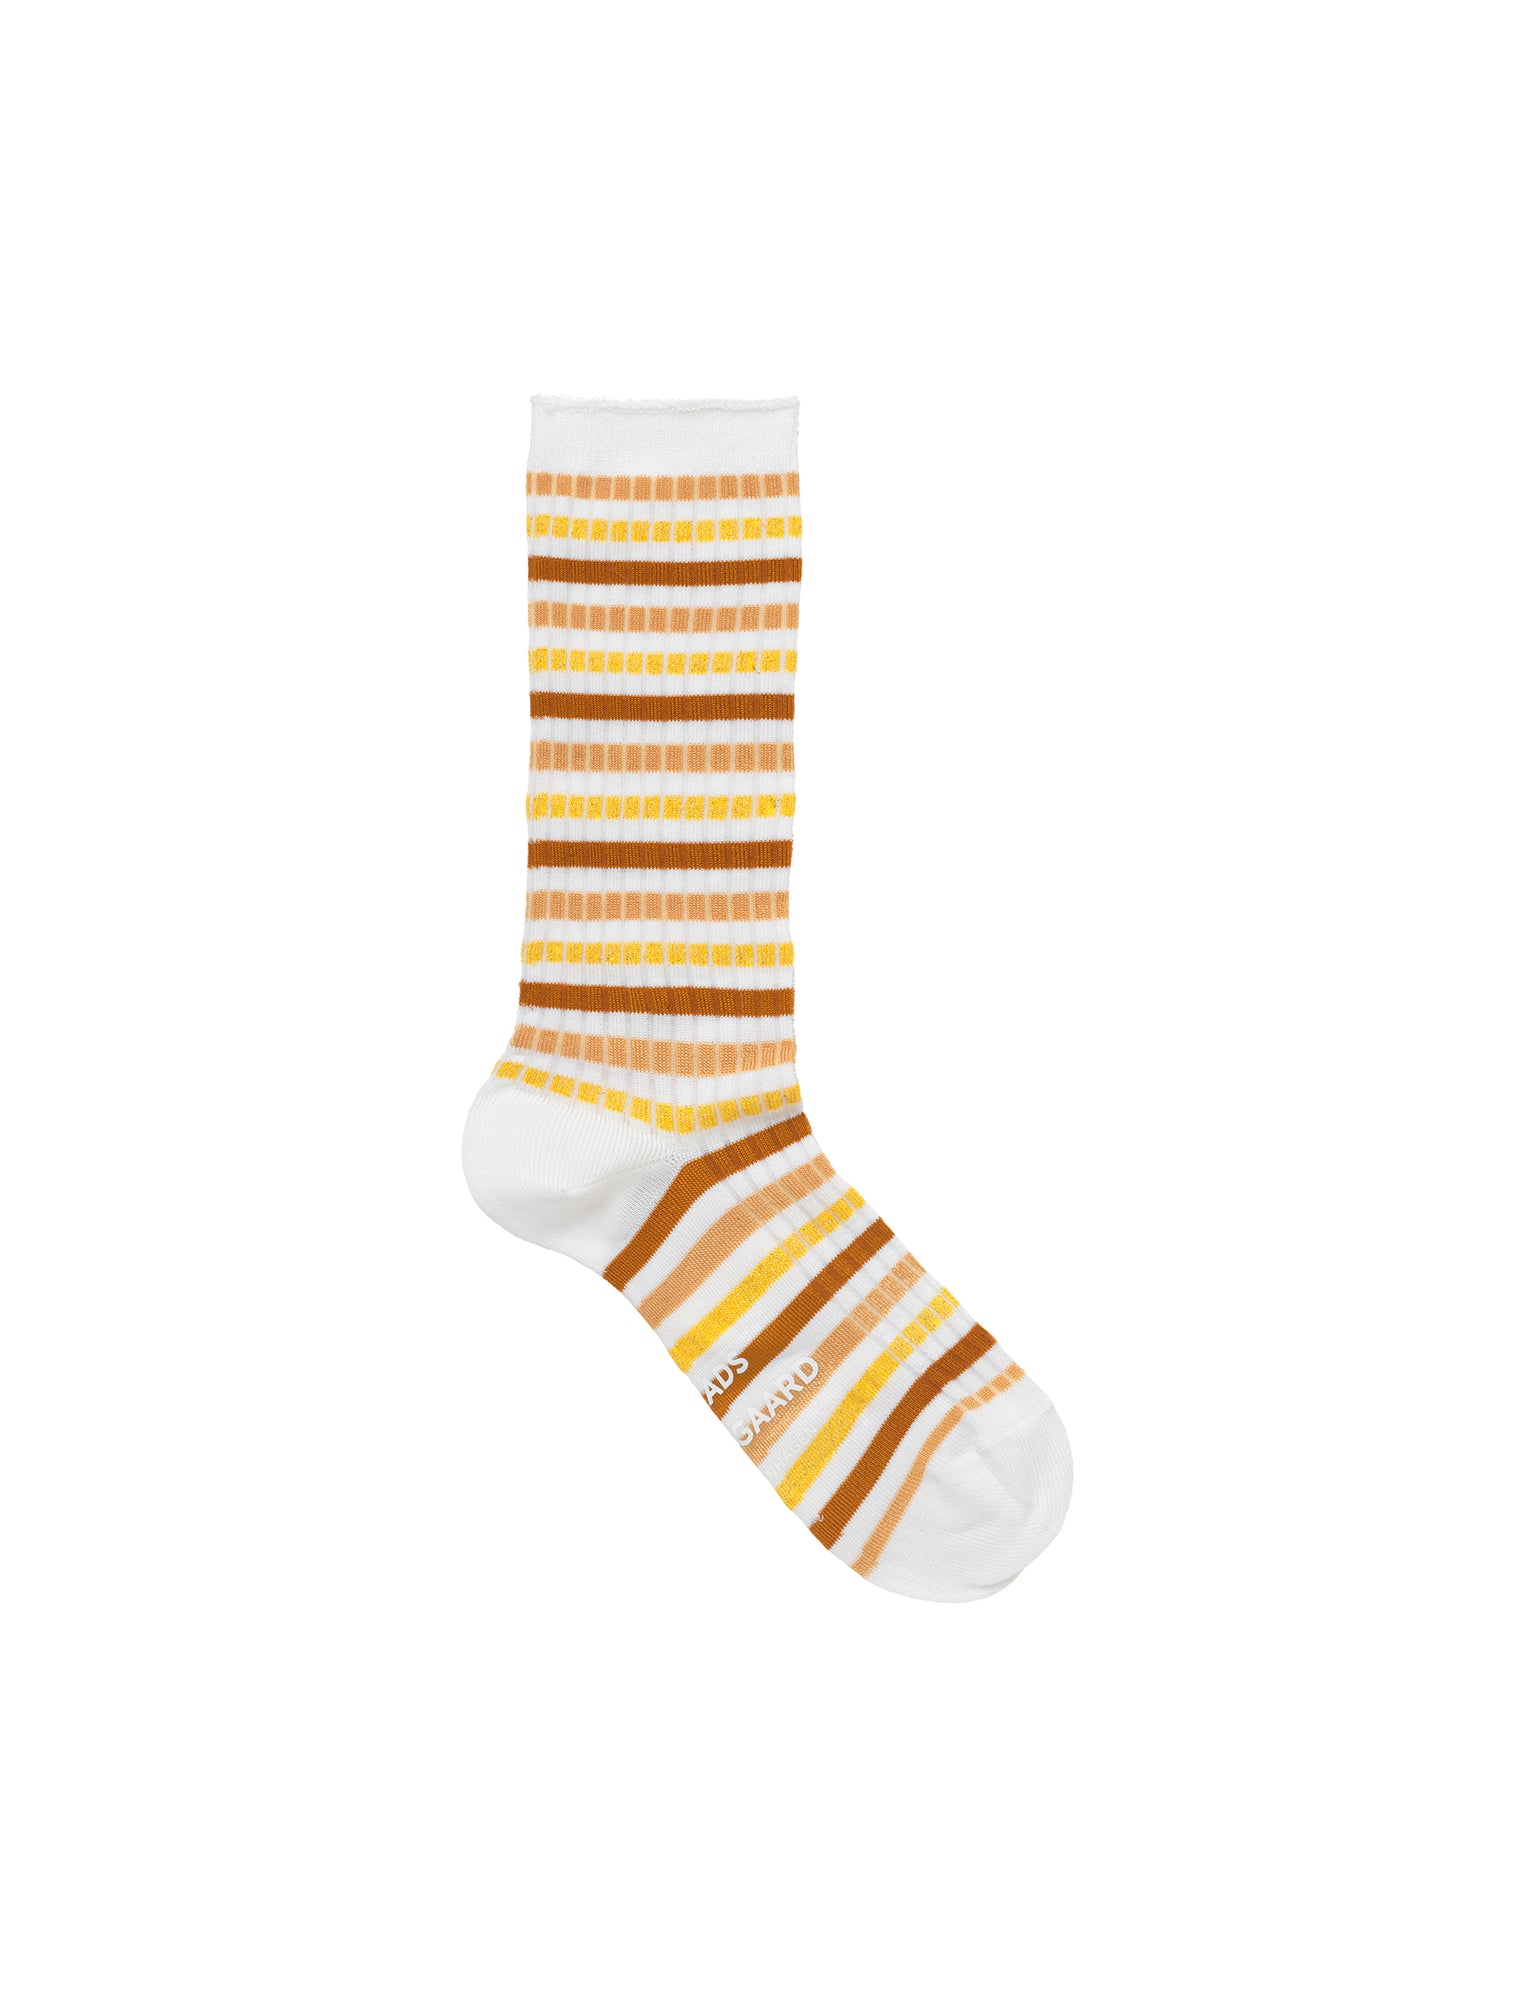 Viscose Rib Andilla, Brown/Yellow Multi